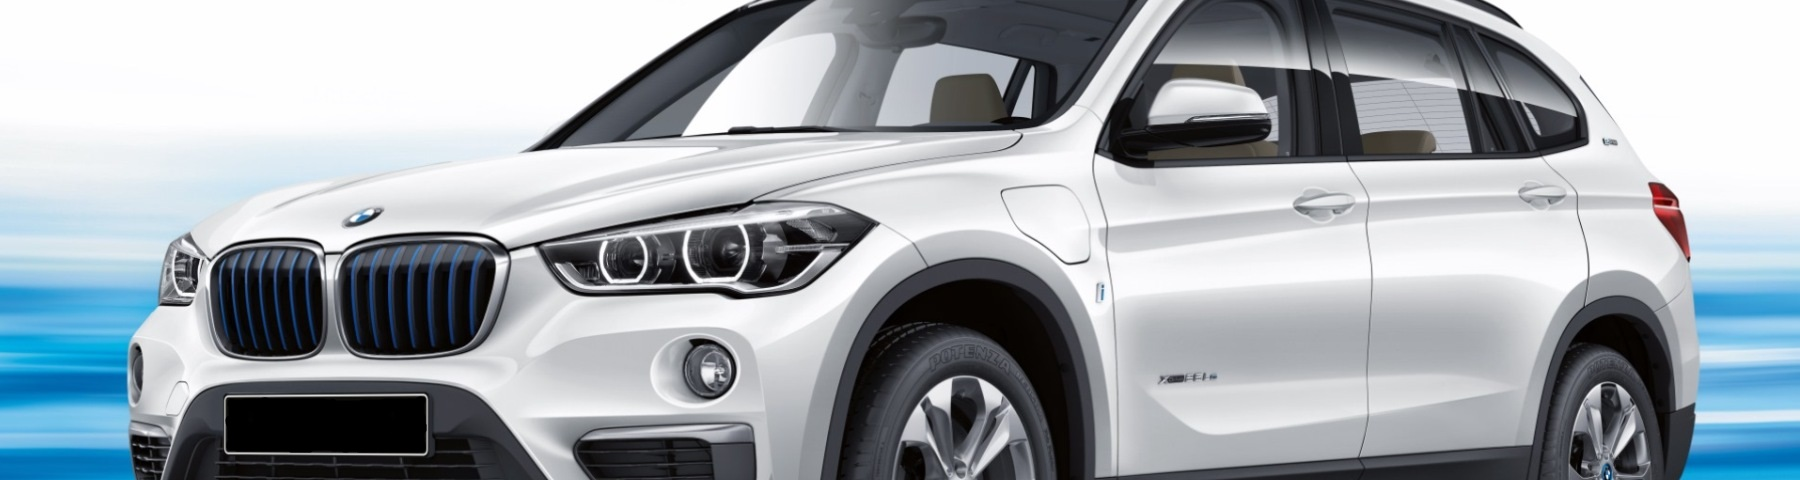 Kindersitz Recaro Zero Innocept Engineering Lademulde Bmw X1